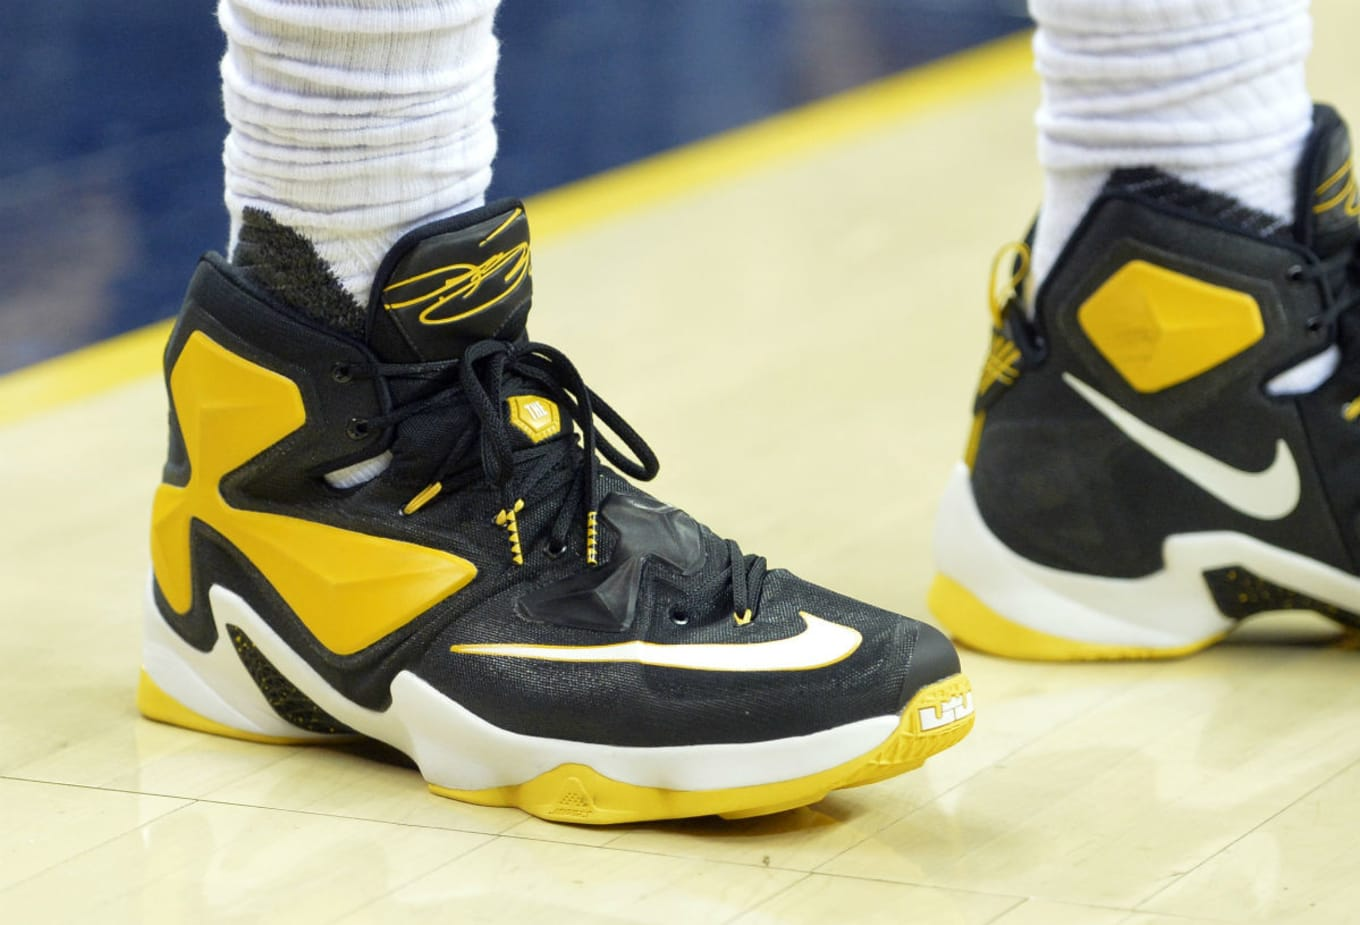 61b9bdac69802 LeBron James Wearing a Black Yellow-White Nike LeBron 13 PE